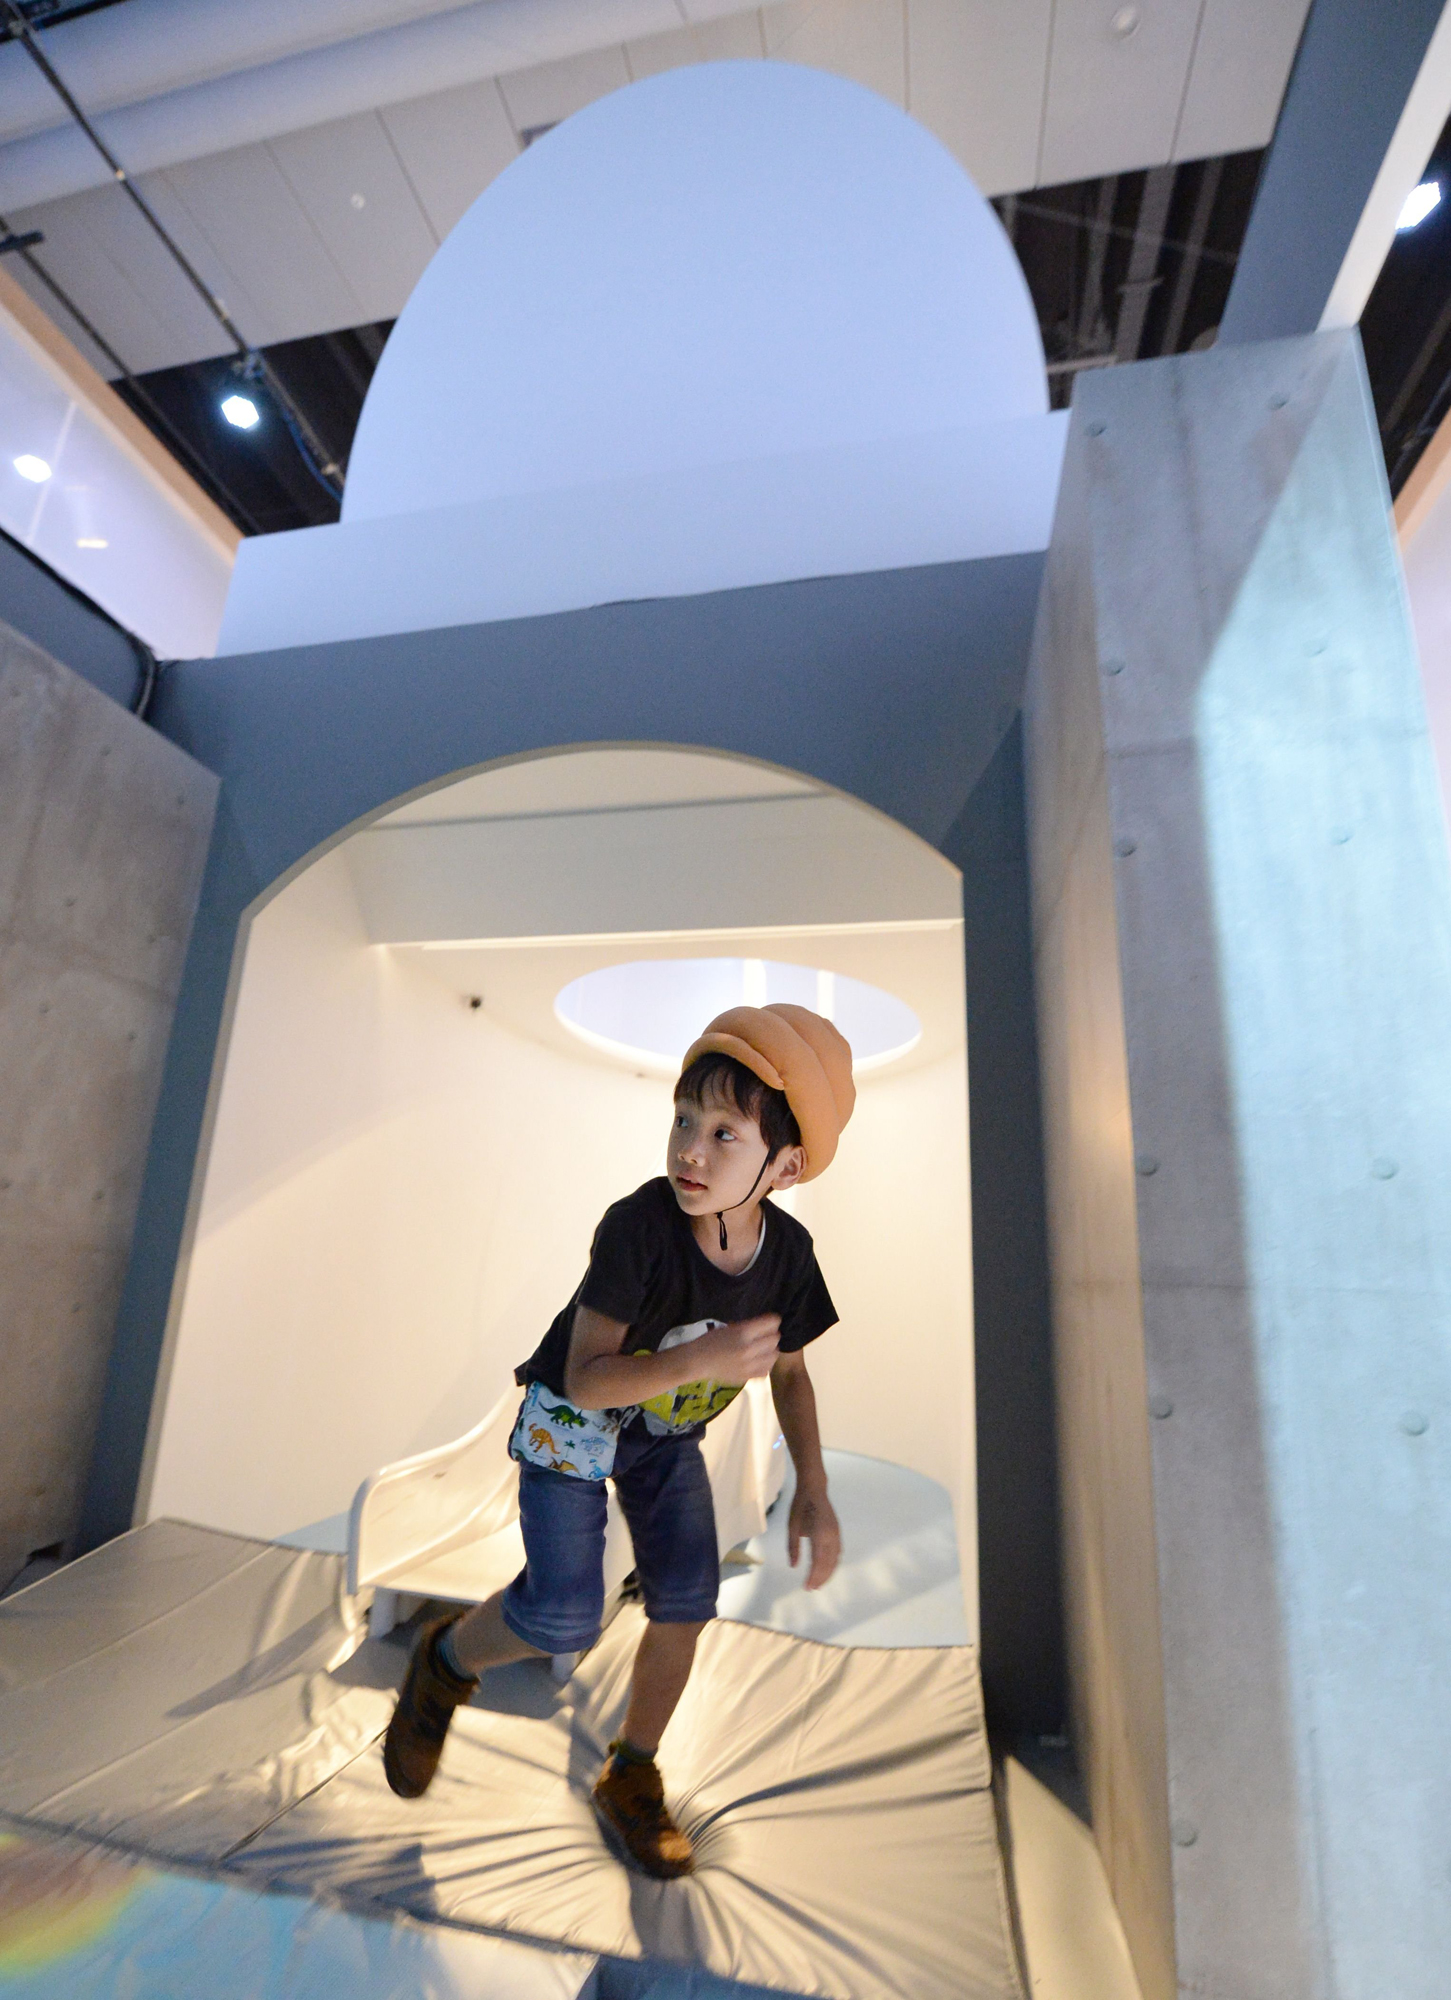 A child wearing a poo-shaped hat gets up from a giant toilet slide at a toilet exhibition at the National Museum of Emerging Science and Innovation in Tokyo on July 9, 2014.